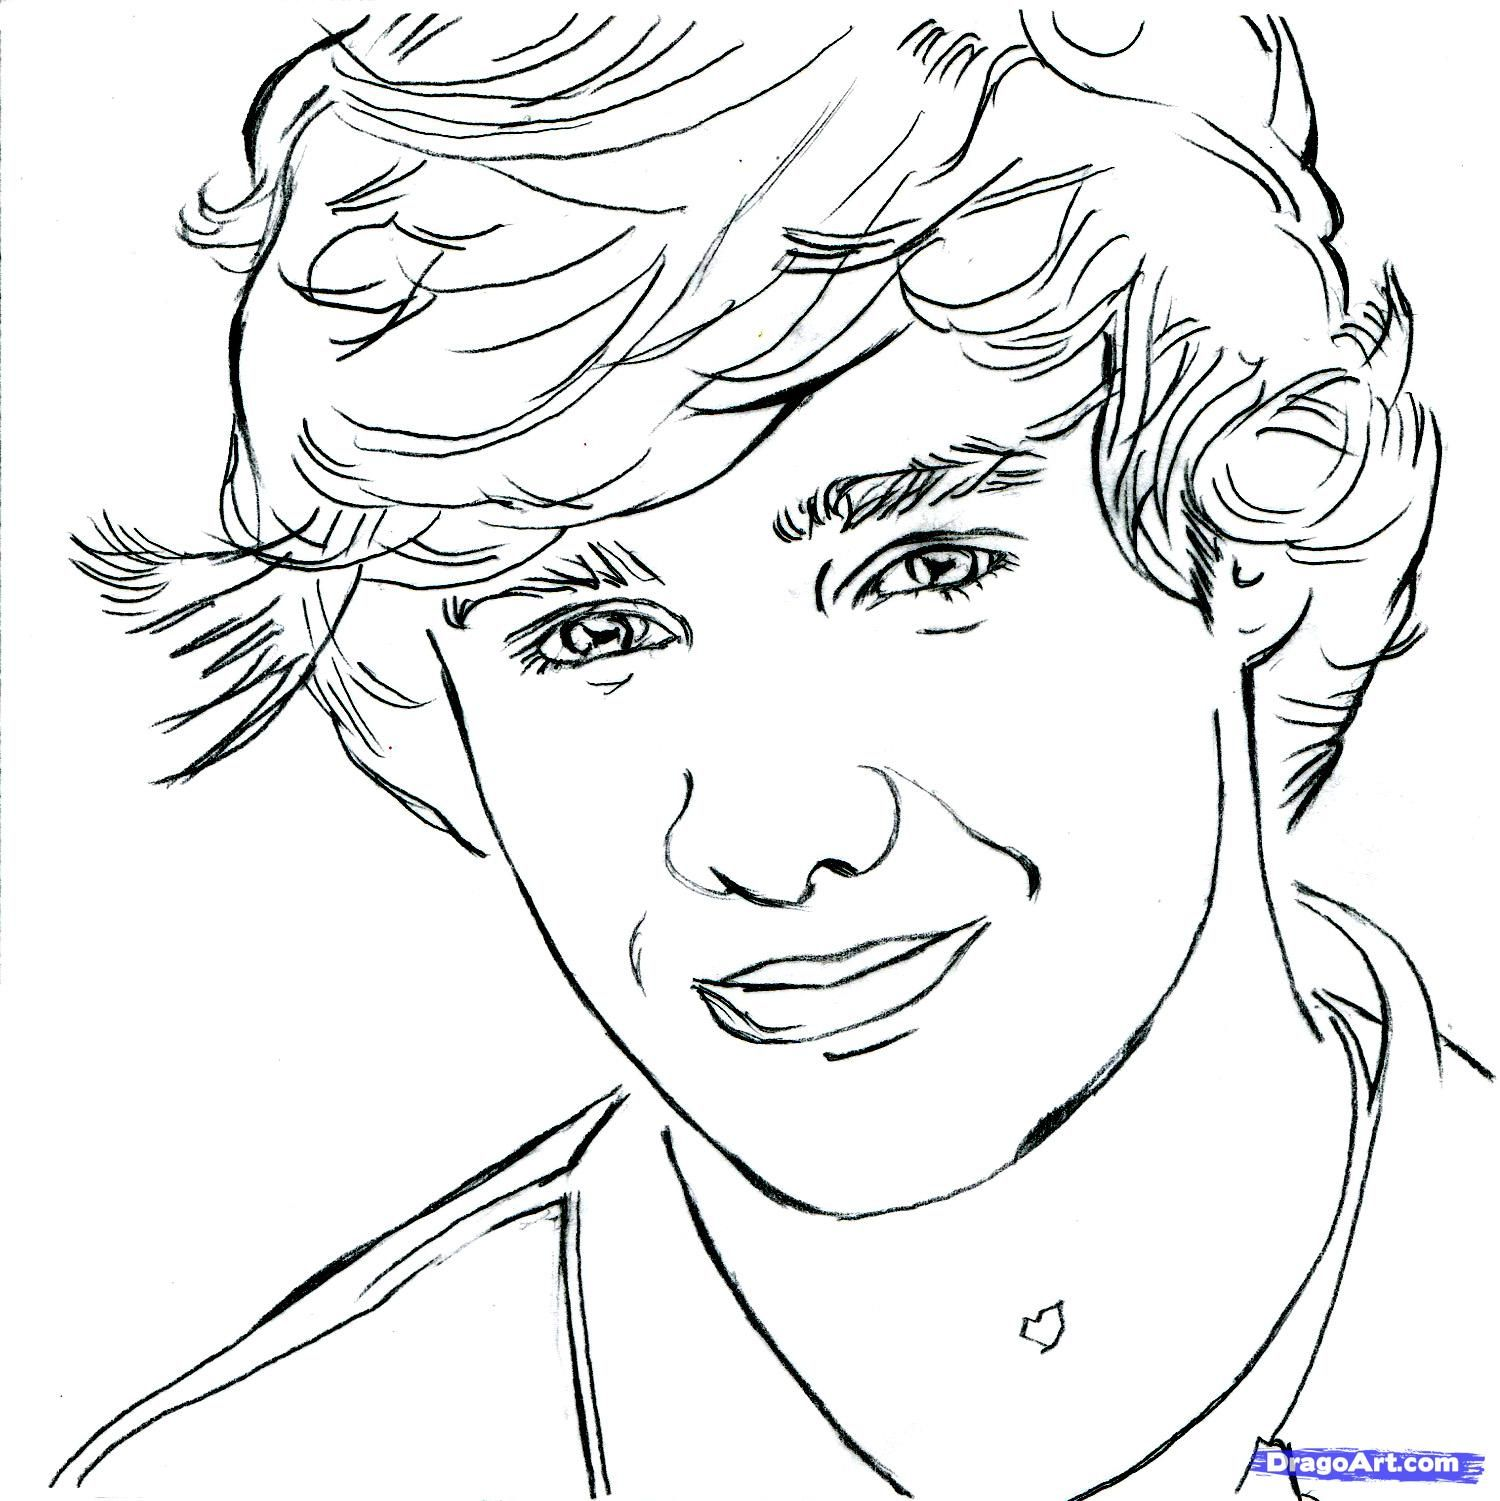 Coloring pages for one direction - One Direction Drawings